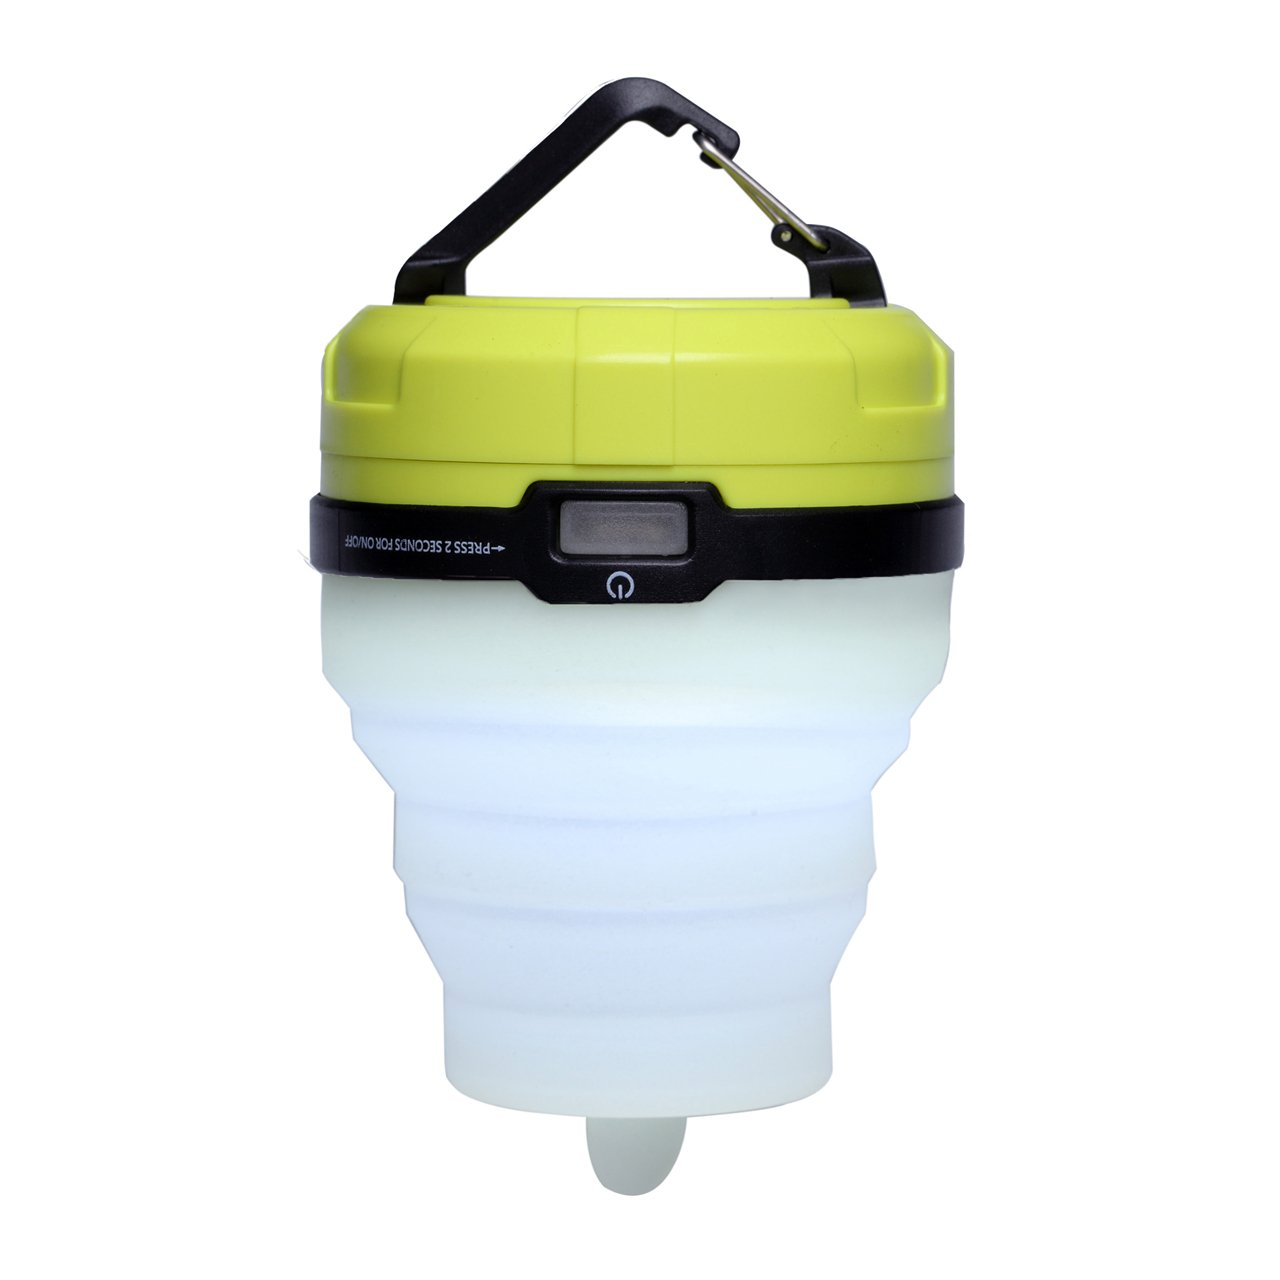 BRAiTOR Super Bright Collapsible LED Camping Lantern - Candle and Colorful Tent Light with 3 AAA Batteries